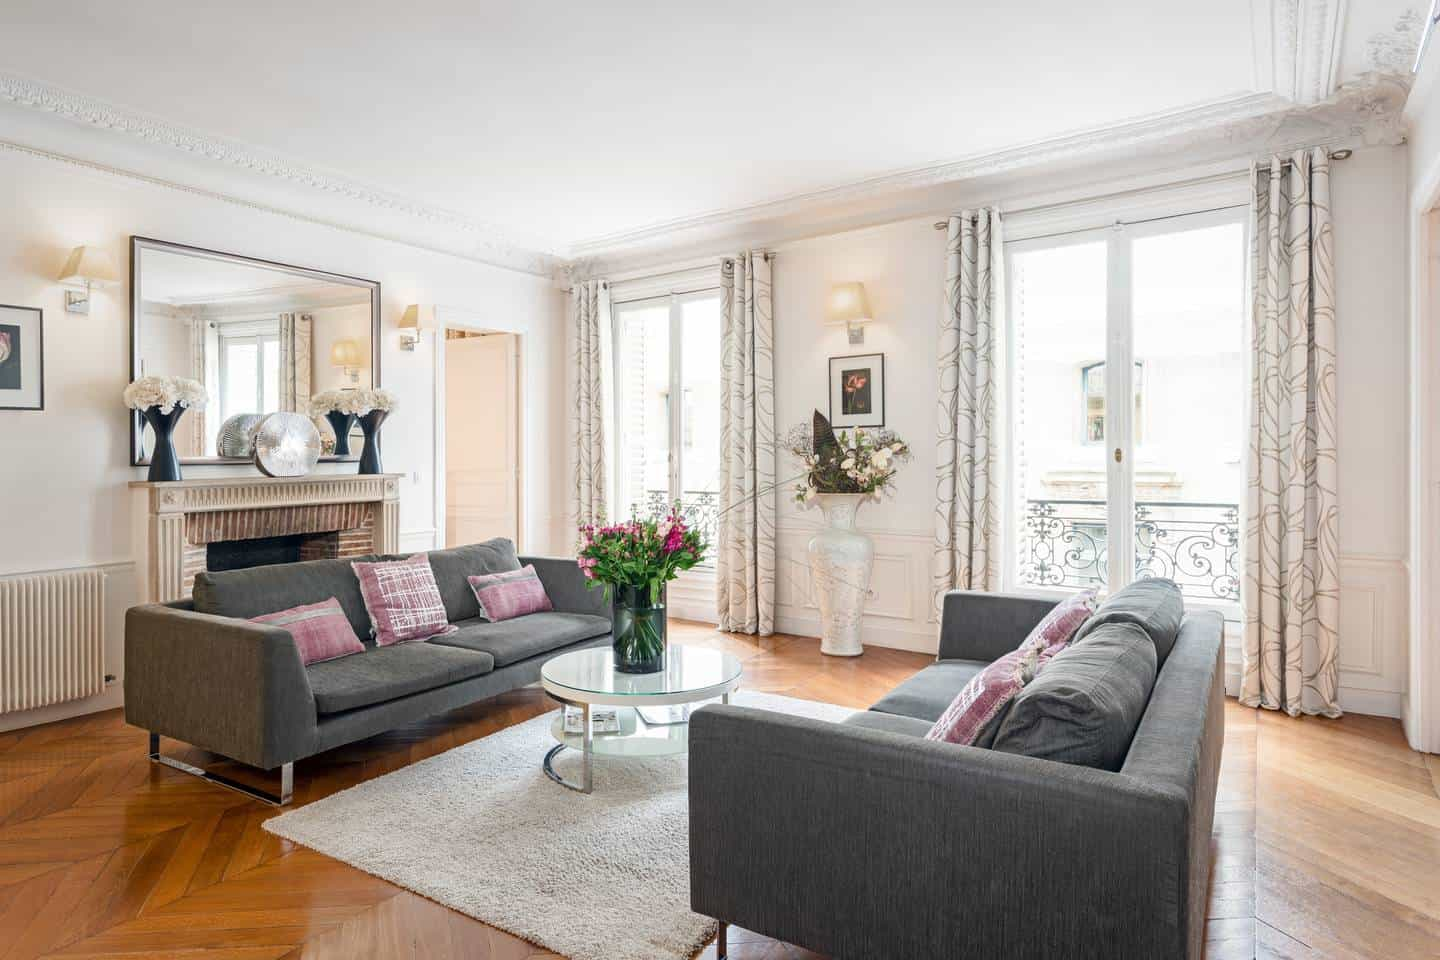 Wow! This Airbnb Paris listing near Musee d'Orsay is dreamy. You have to see the pictures!